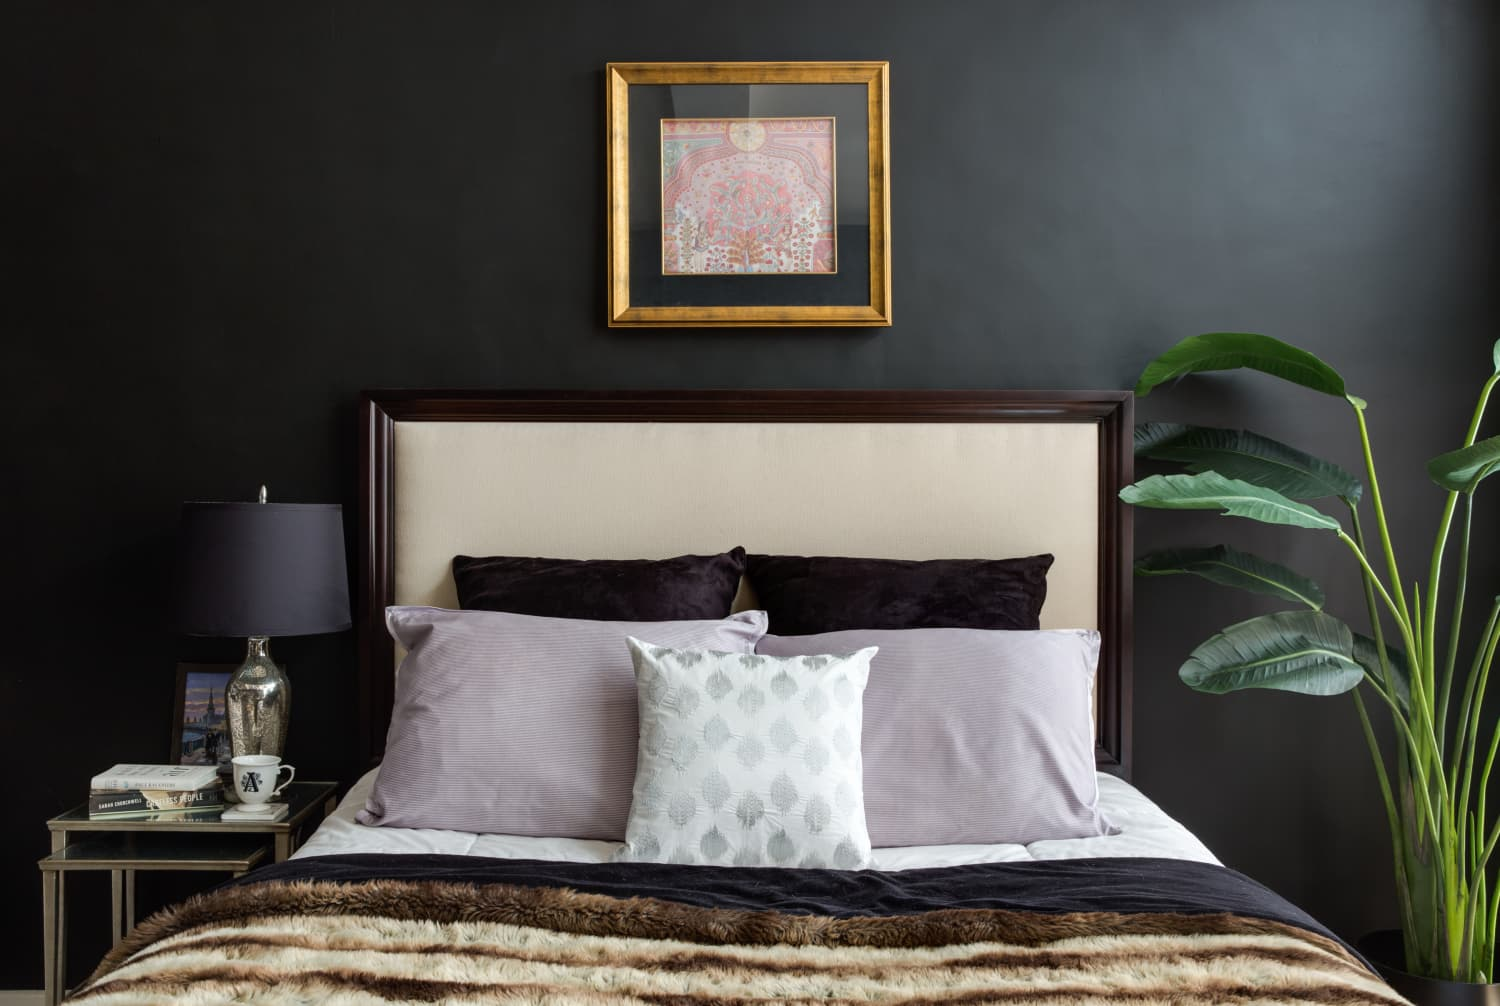 Could This Bedroom Trend Actually Help You Get a Better Night of Sleep?